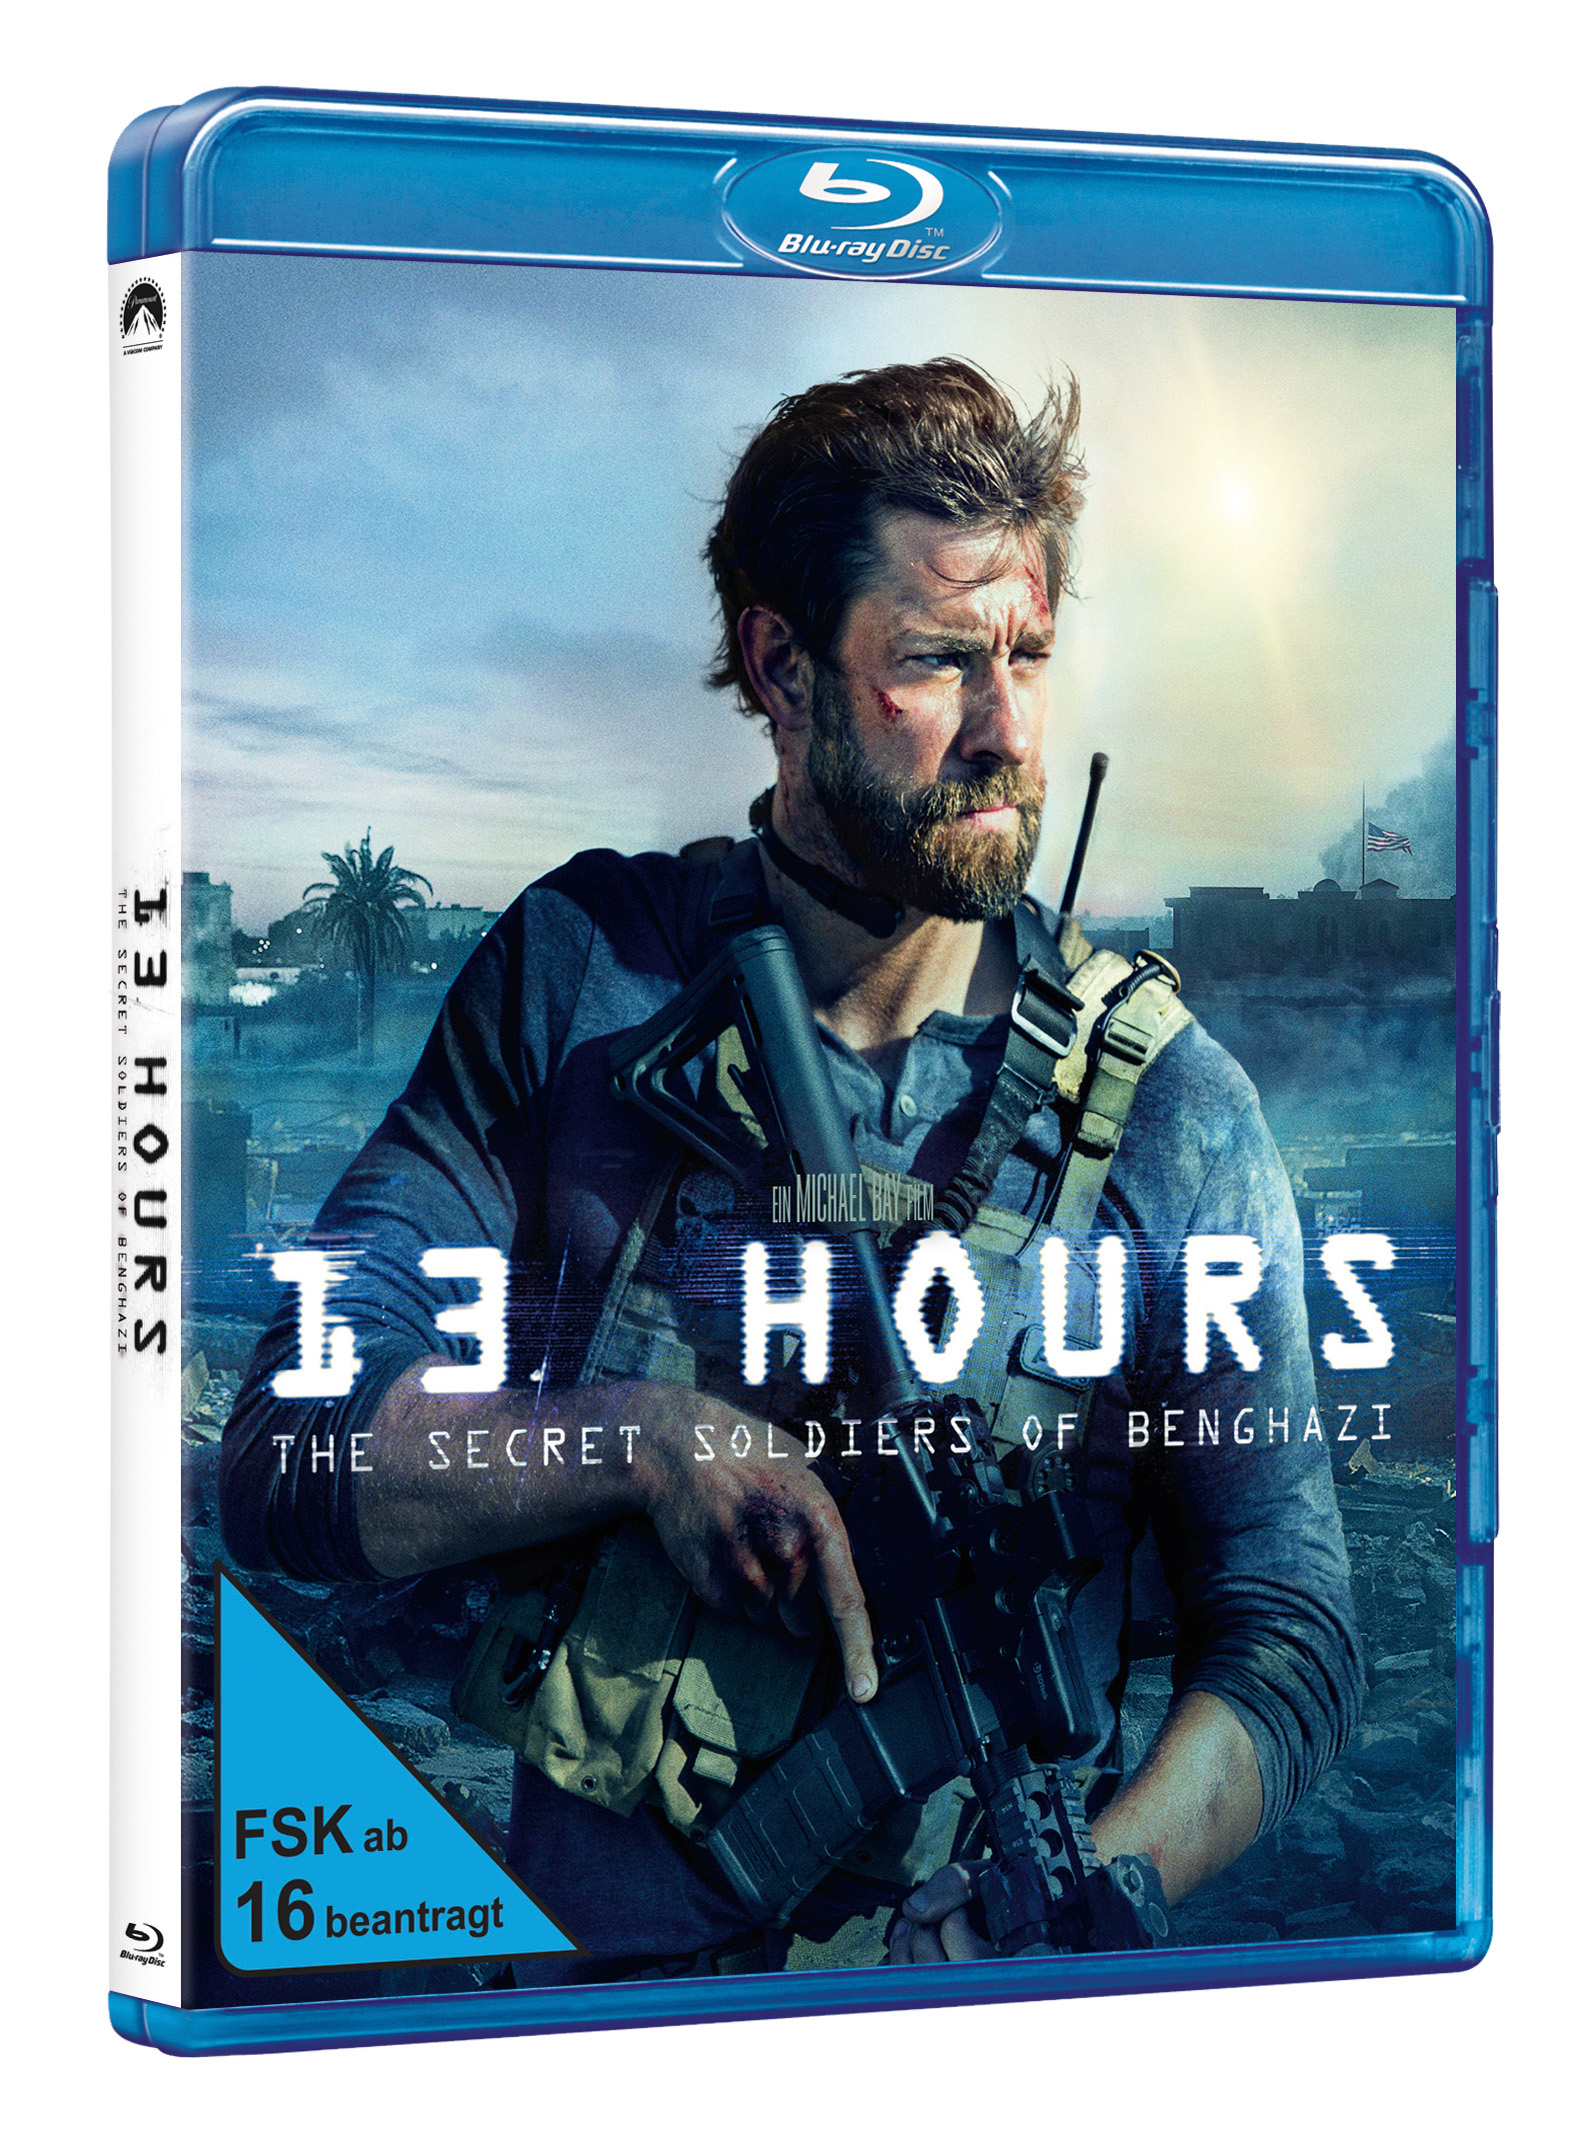 13 Hours - The Secret Soldiers of Benghazi BluRay